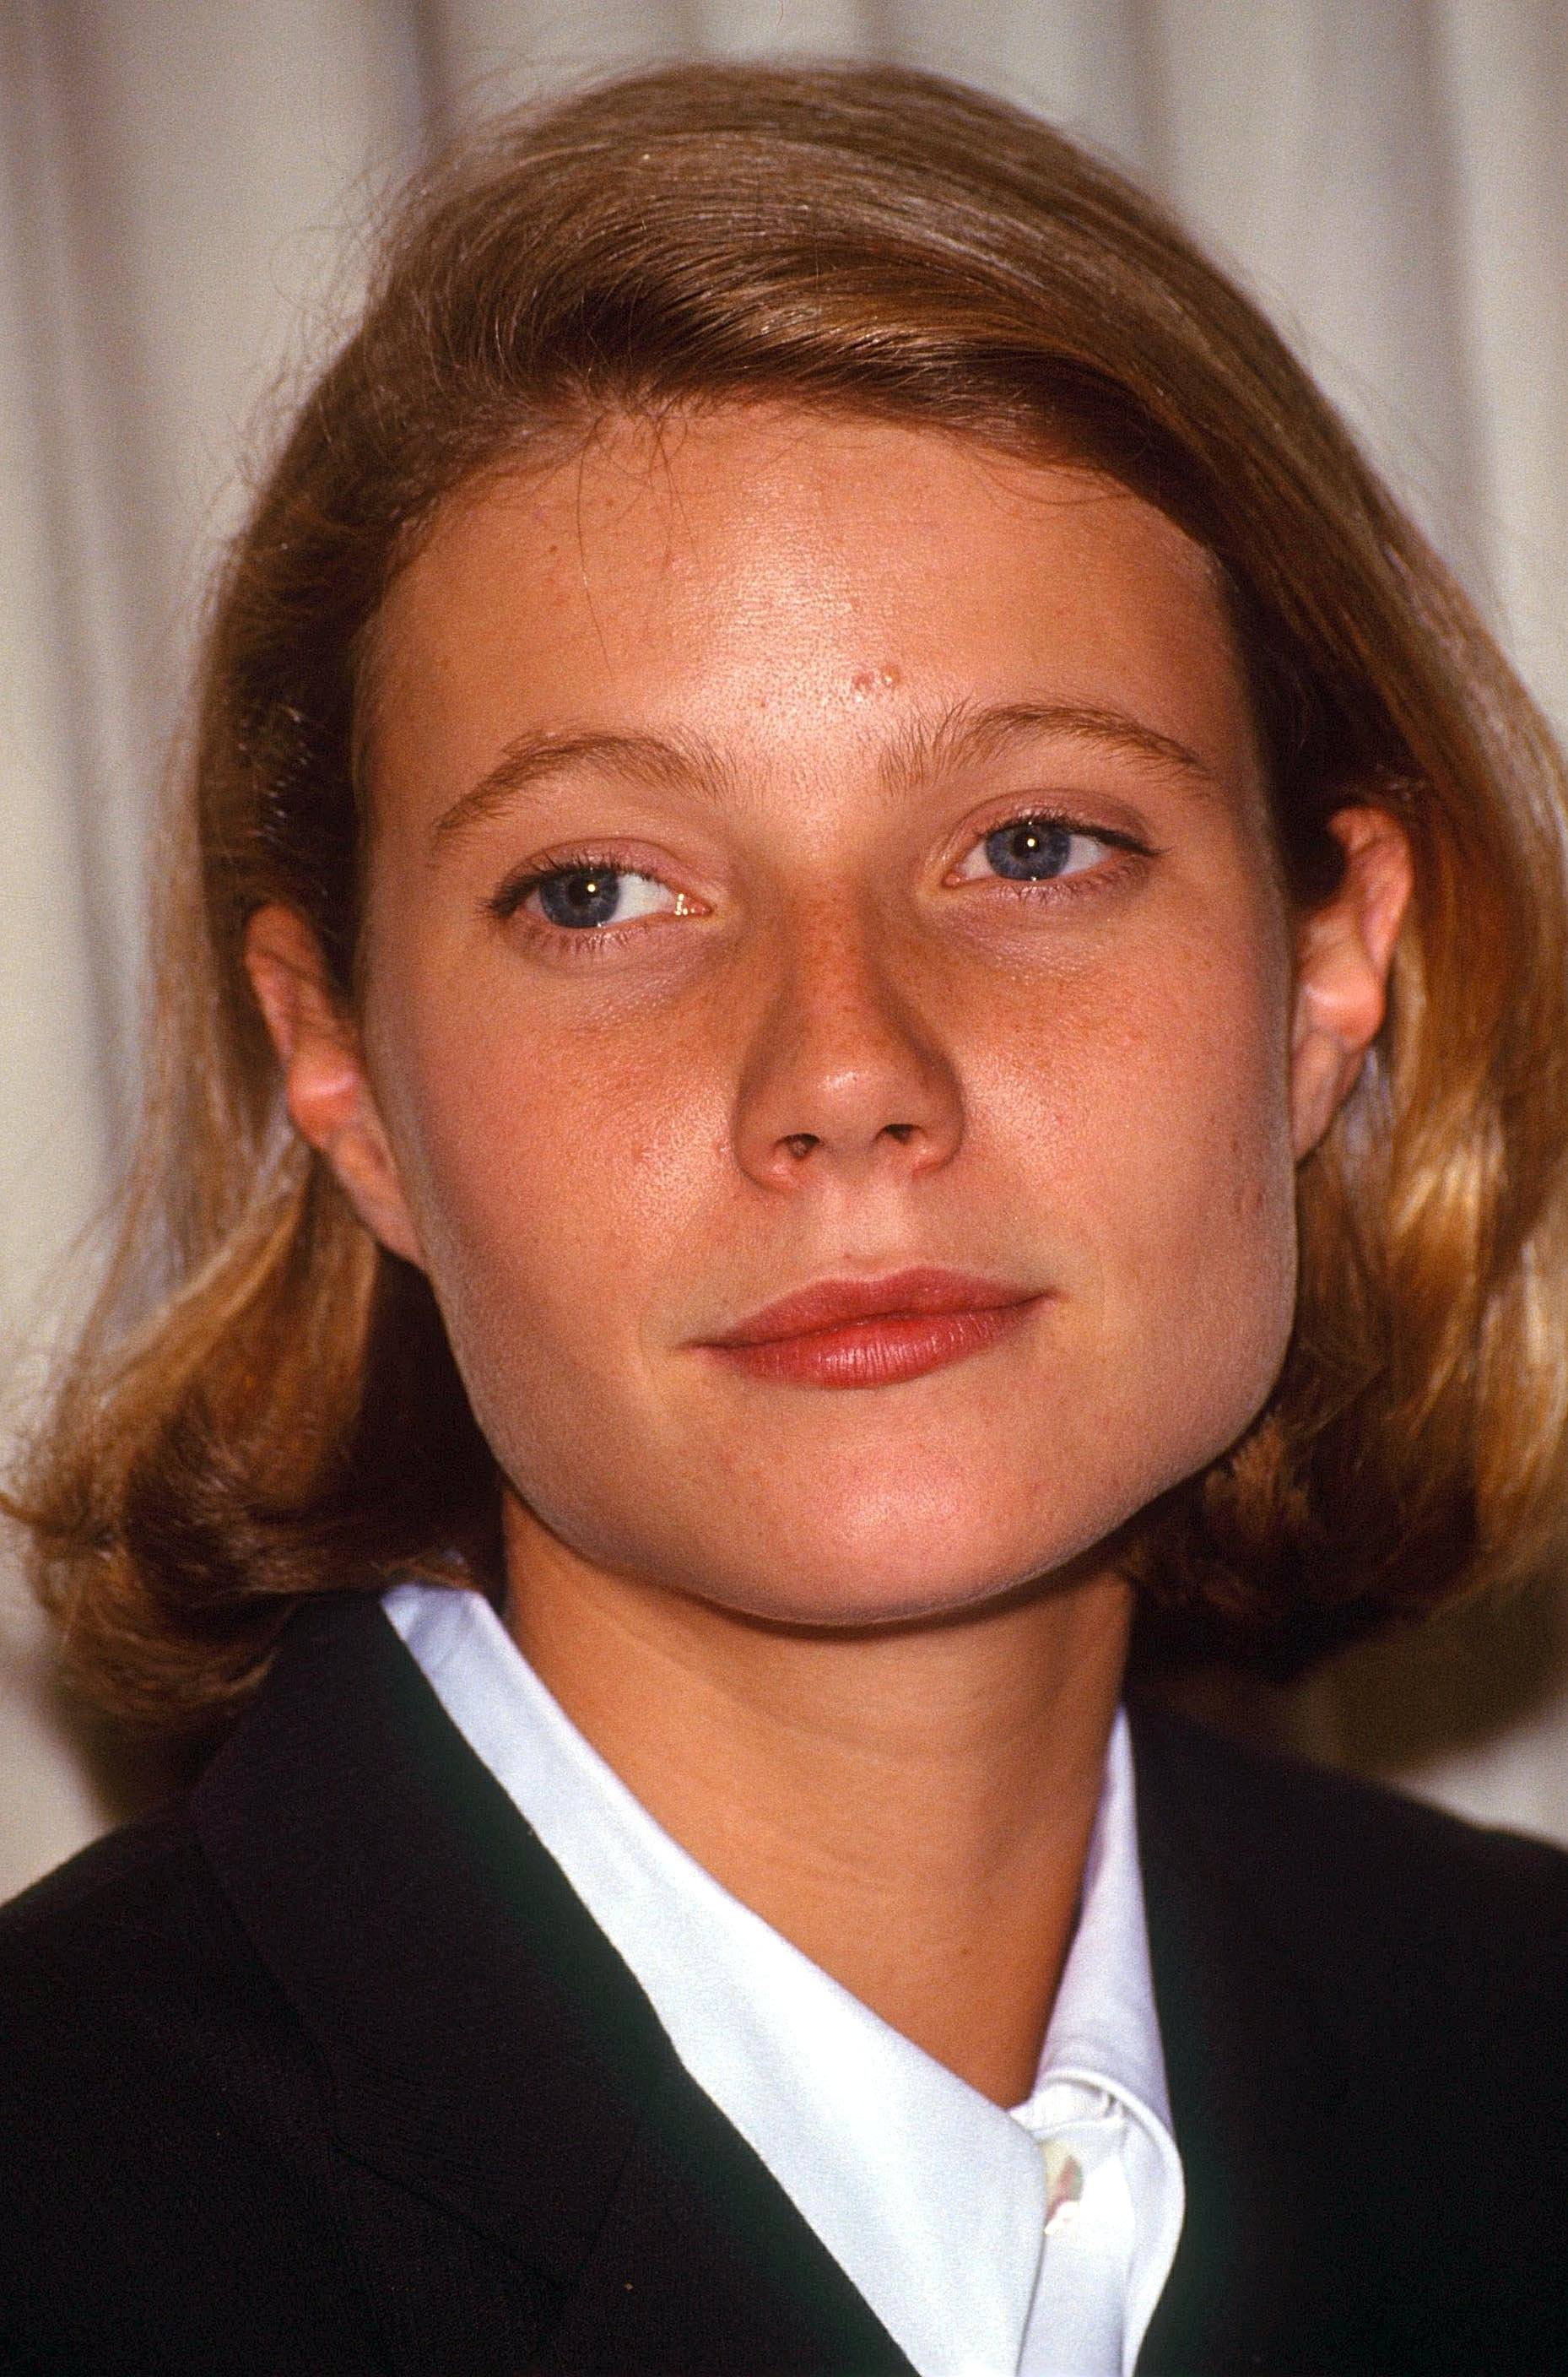 Gwyneth Paltrow with natural blonde bob length hair in side parting.